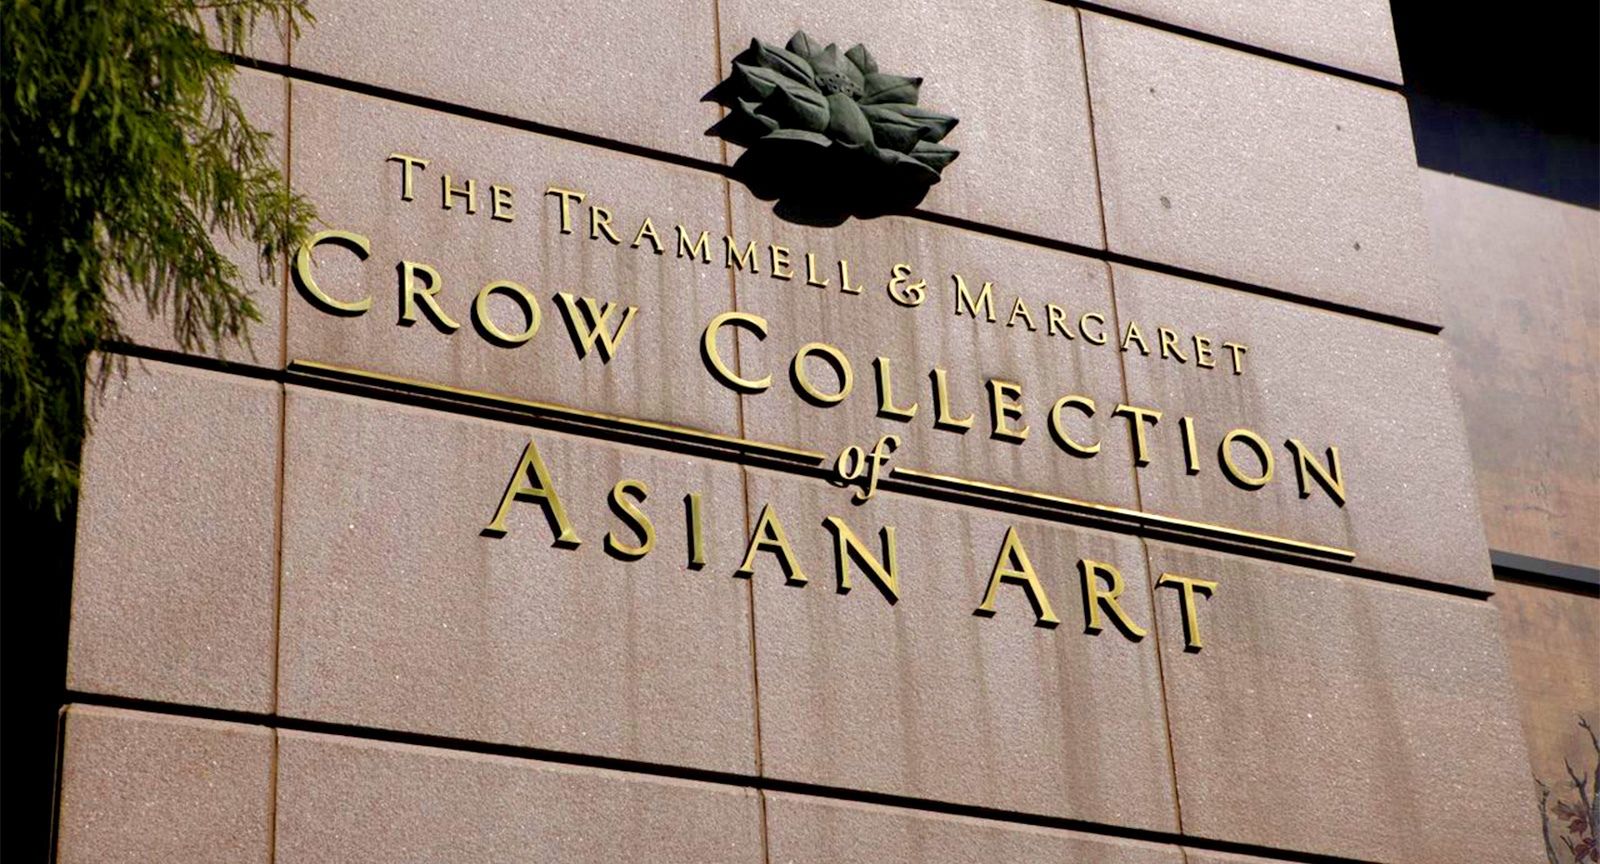 Crow Collection Of Asian Art Launches New Wellness Institute And Announces Jacqueline Buckingham Anderson As Director